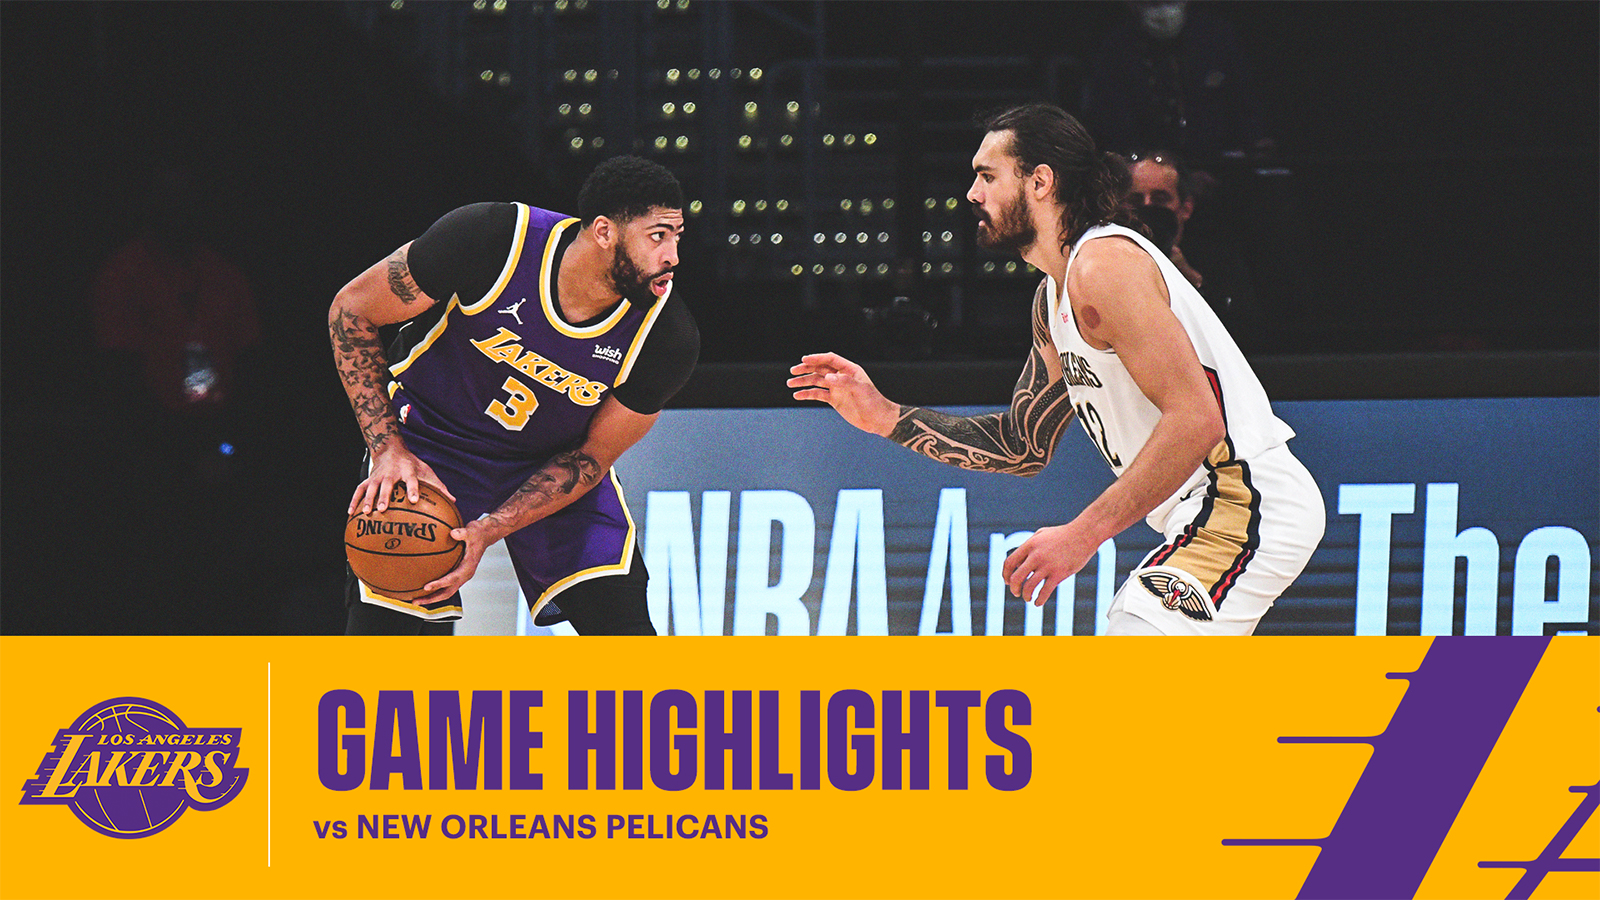 HIGHLIGHTS | Anthony Davis (17 pts, 6 reb, 5 ast) vs New Orleans Pelicans